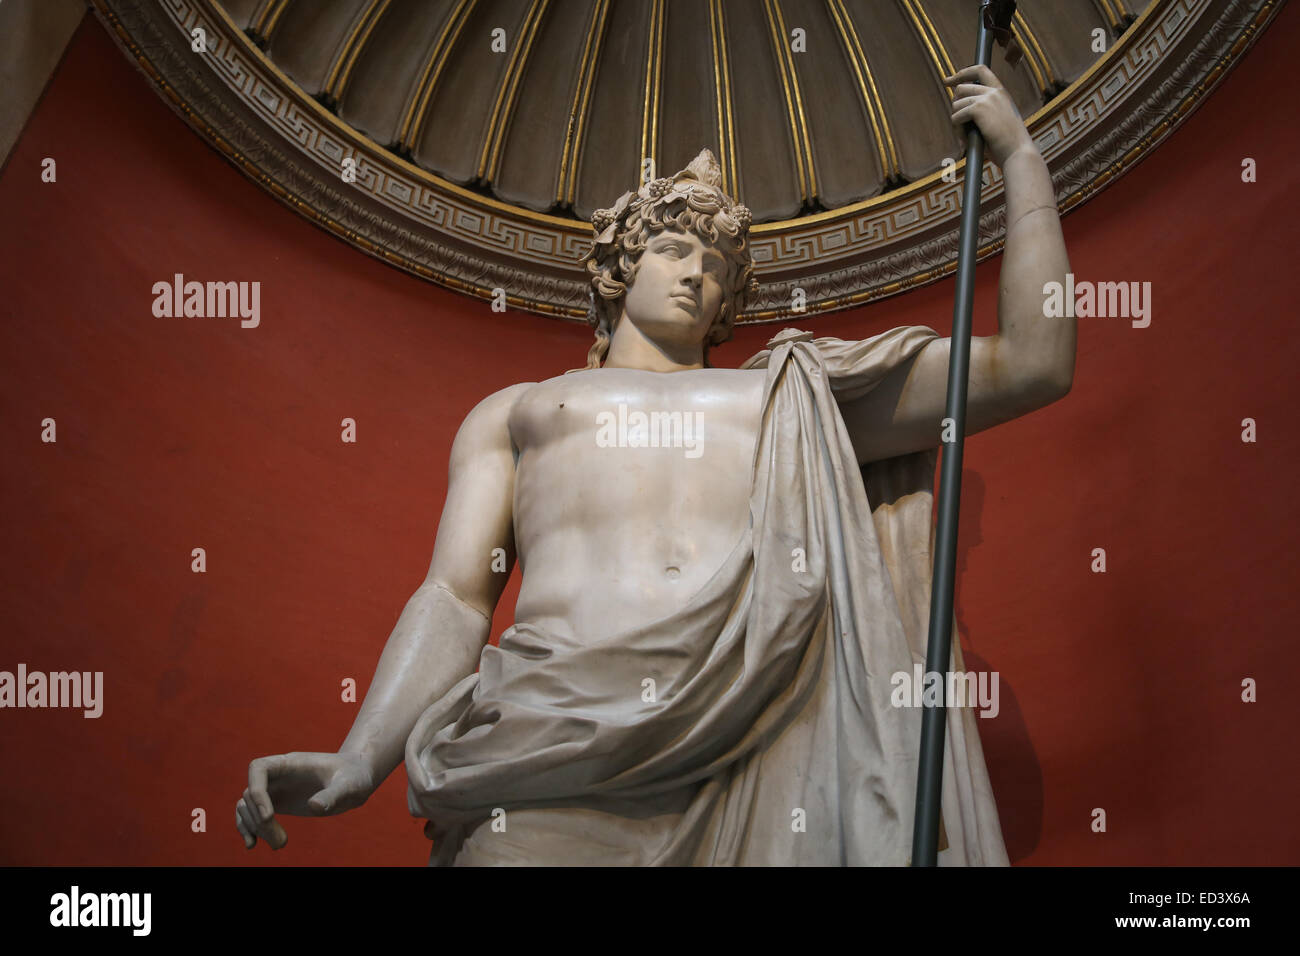 Antinous (111-130). Bithynian Greek youth. Favourite or lover of the emperor Hadrian. Colossal sculpture The Braschi - Stock Image